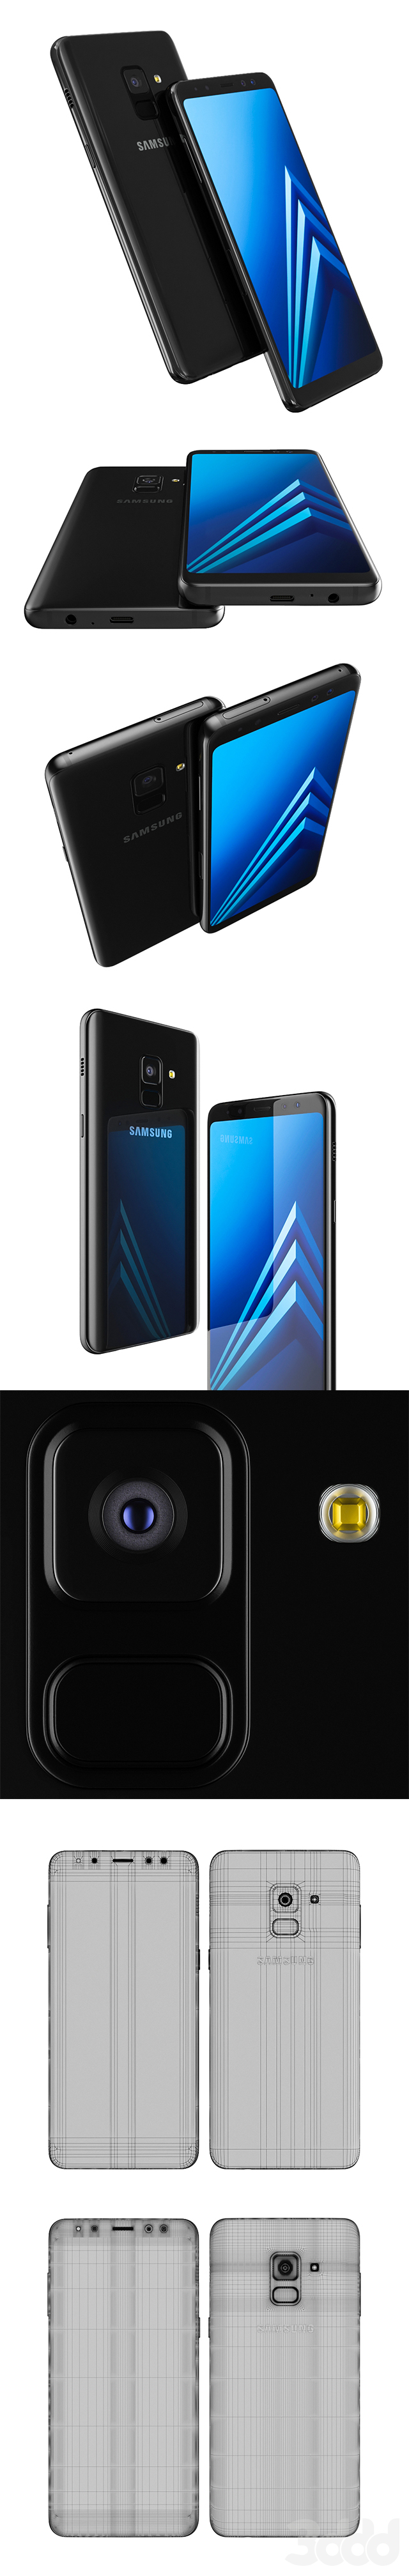 Samsung Galaxy A8 Black